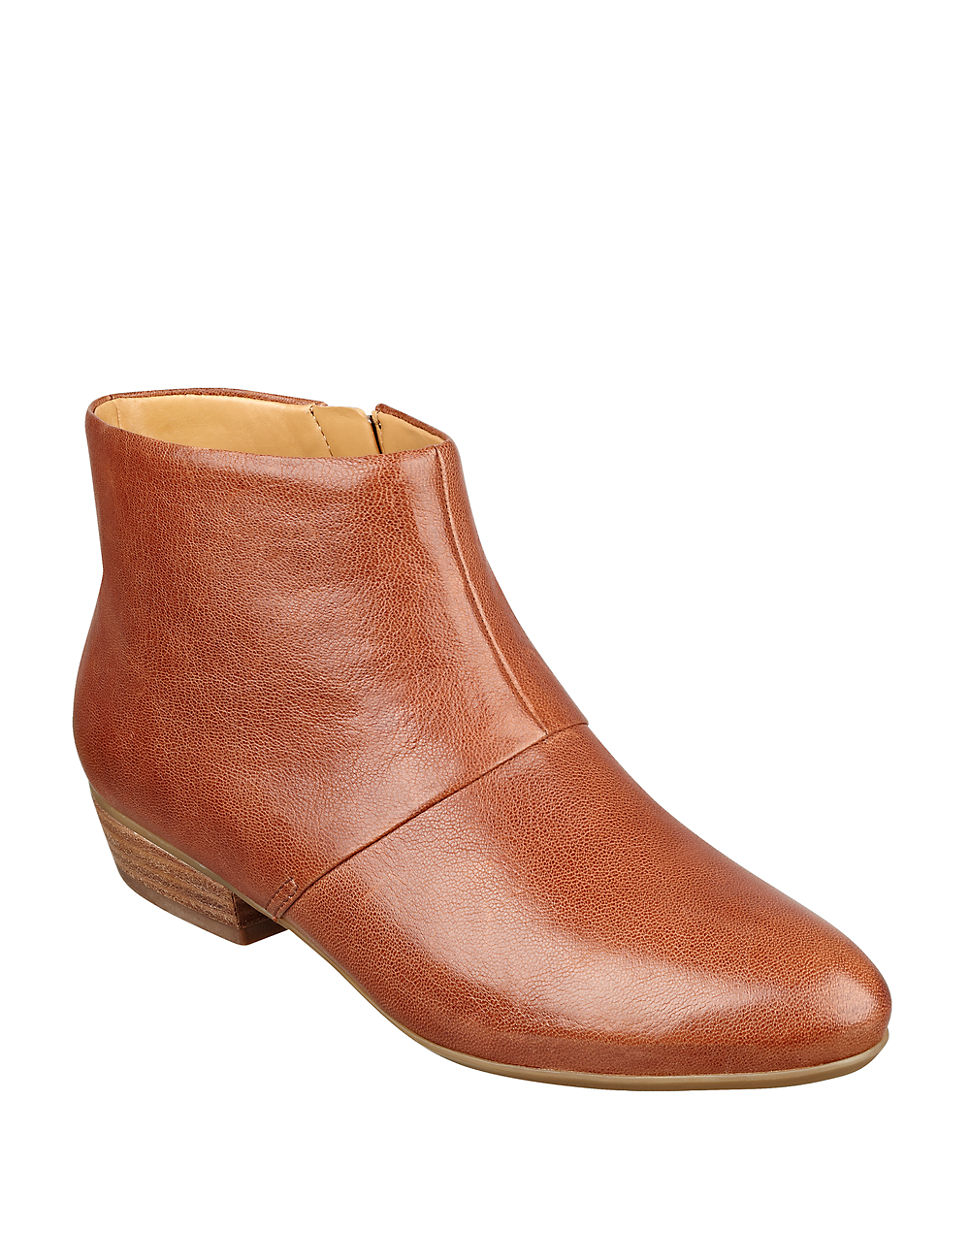 Nine West Women's QUARRYN Suede Ankle Boot Shop Our Huge Selection· Read Ratings & Reviews· Explore Amazon Devices· Fast Shipping.